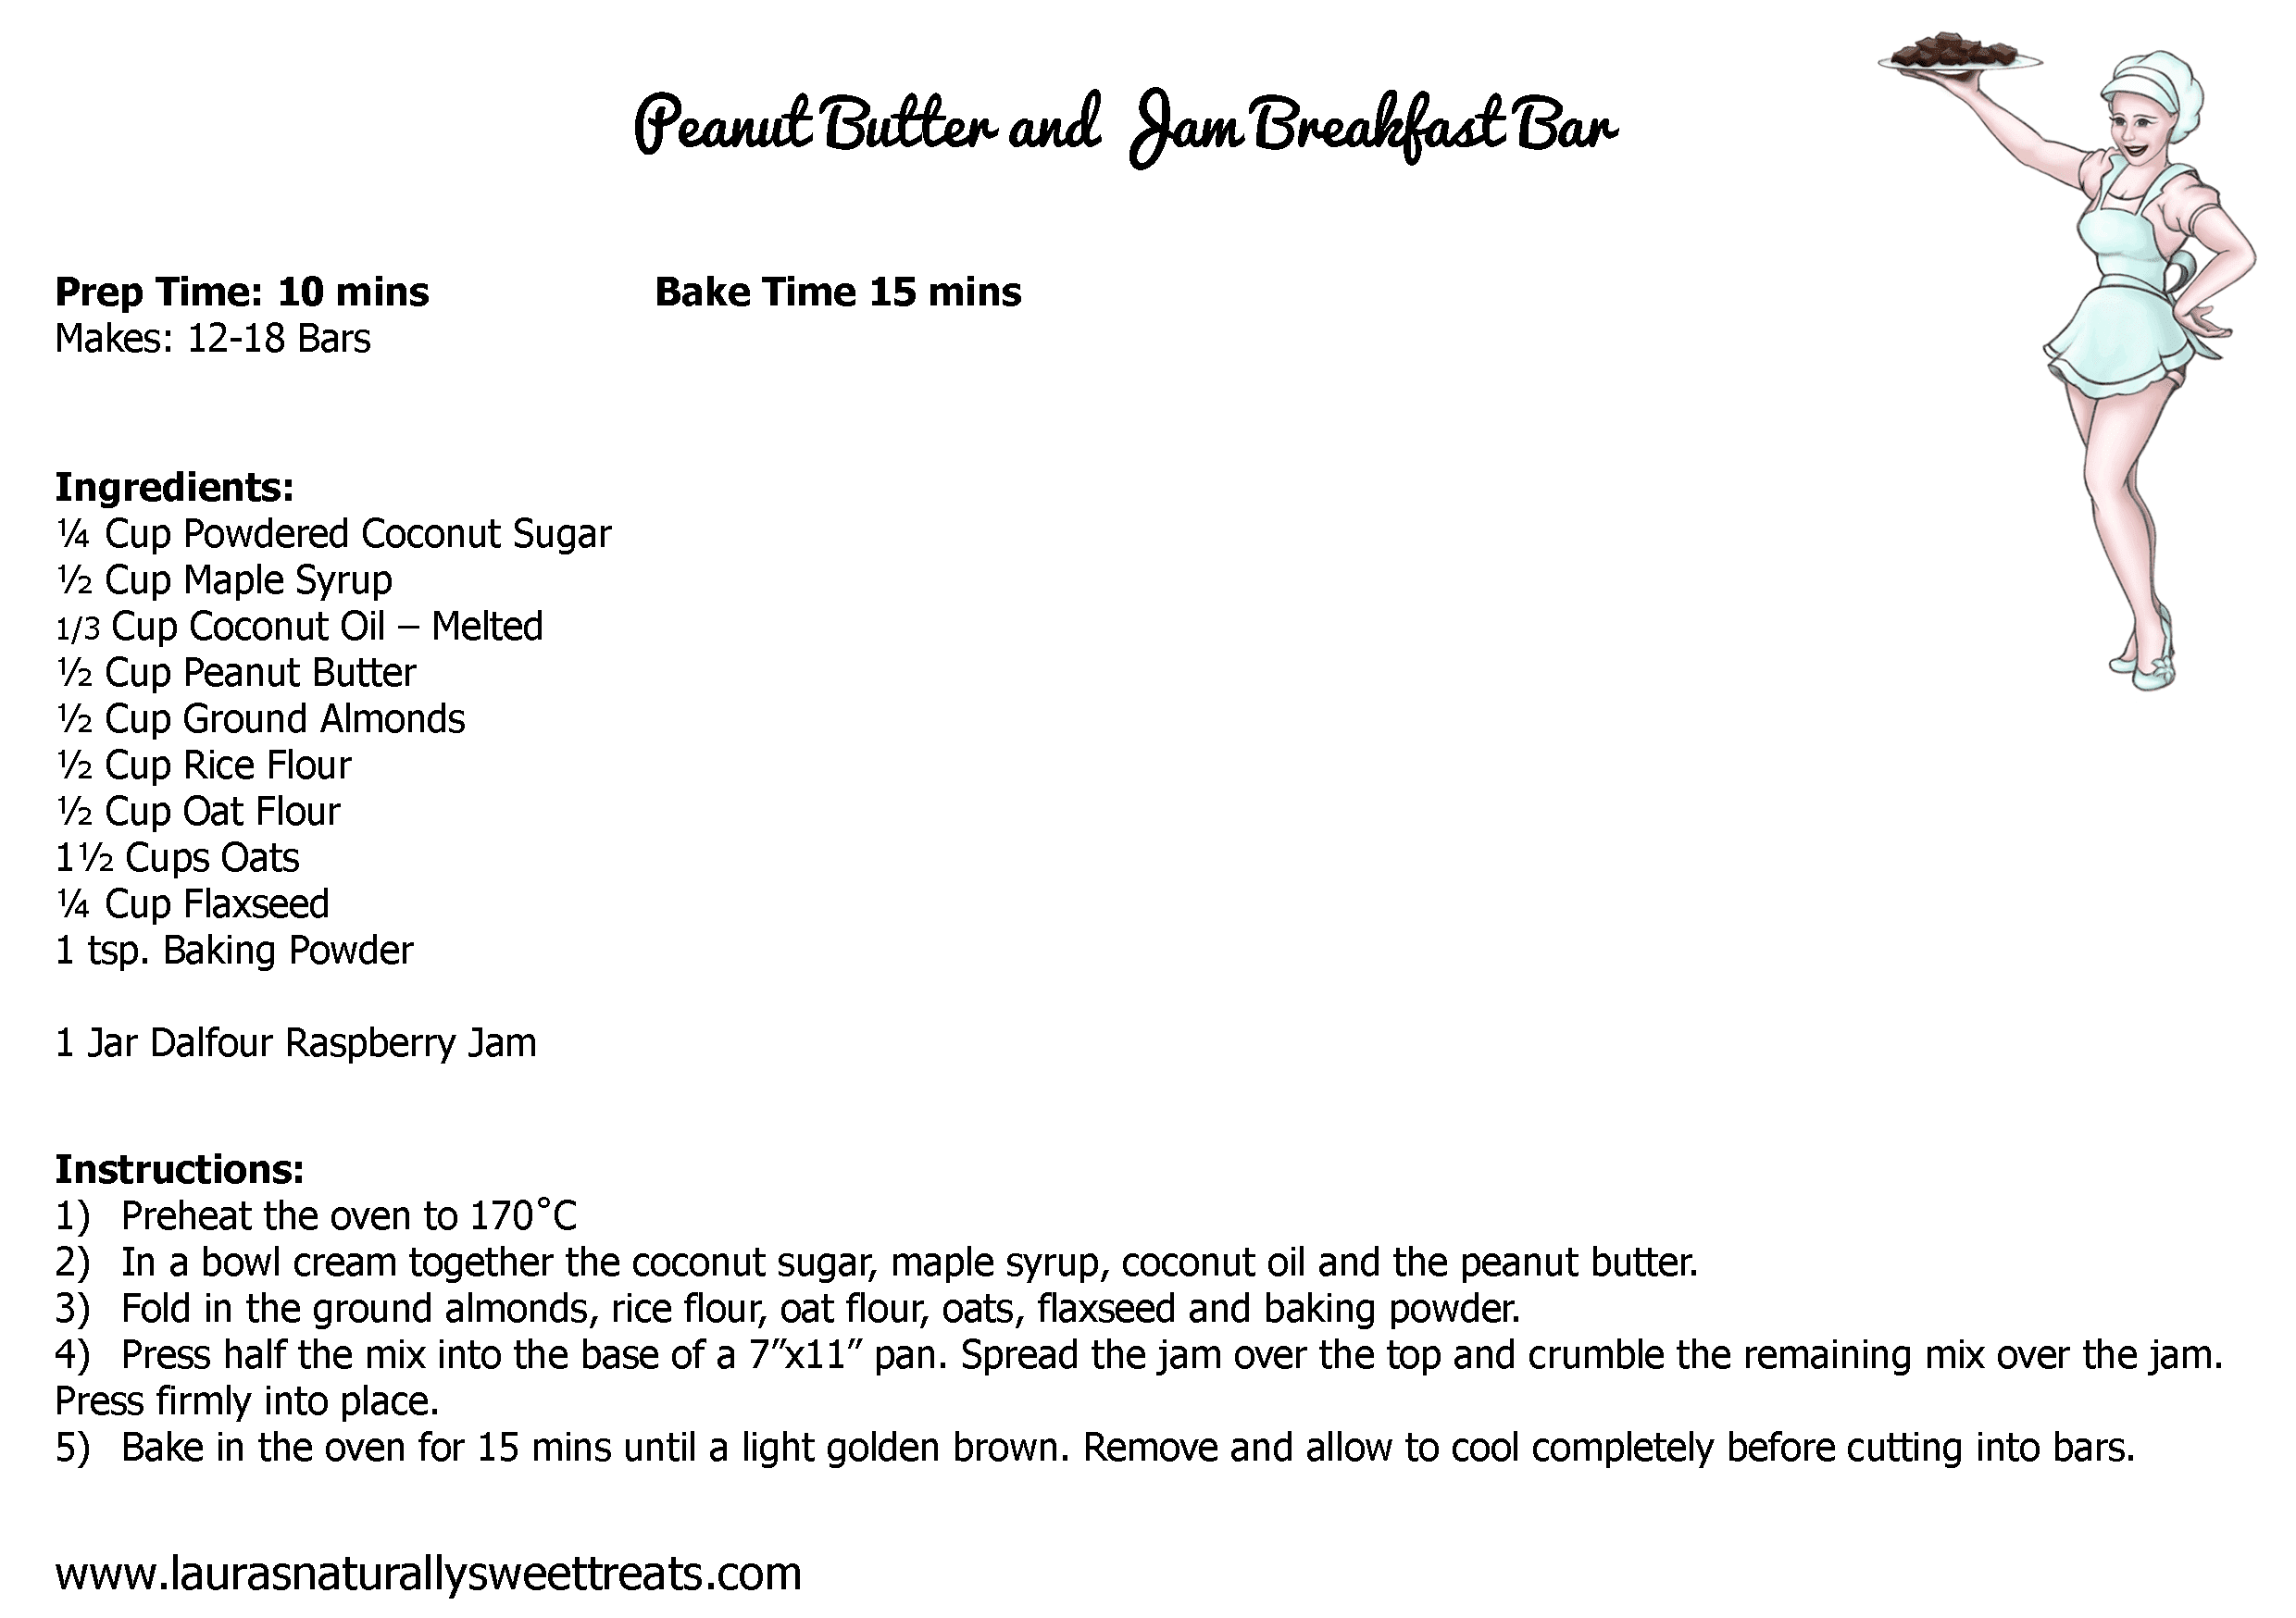 peanut butter and jam breakfast bar recipe card